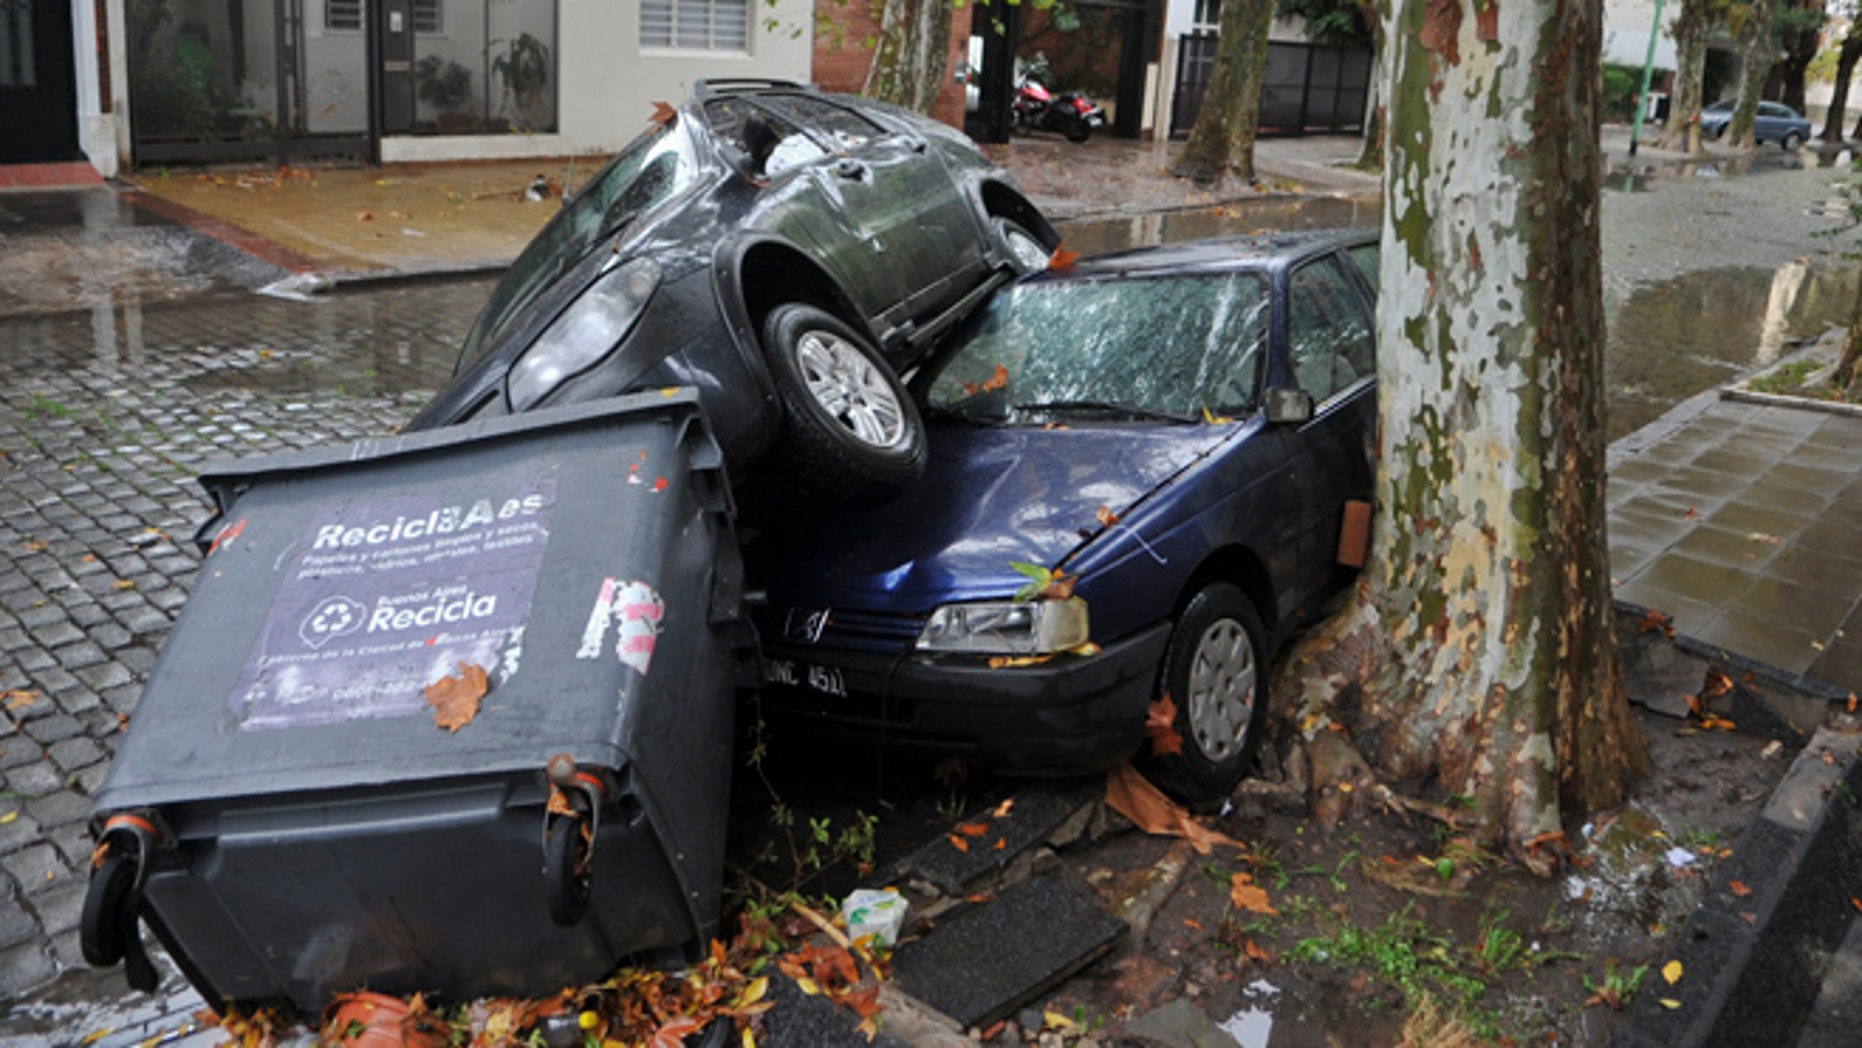 April 2, 2013: Cars and garbage containers lay piled up after flash flooding caused damage overnight in Buenos Aires, Argentina. According to city officials, at least five people were killed during the heavy rains.